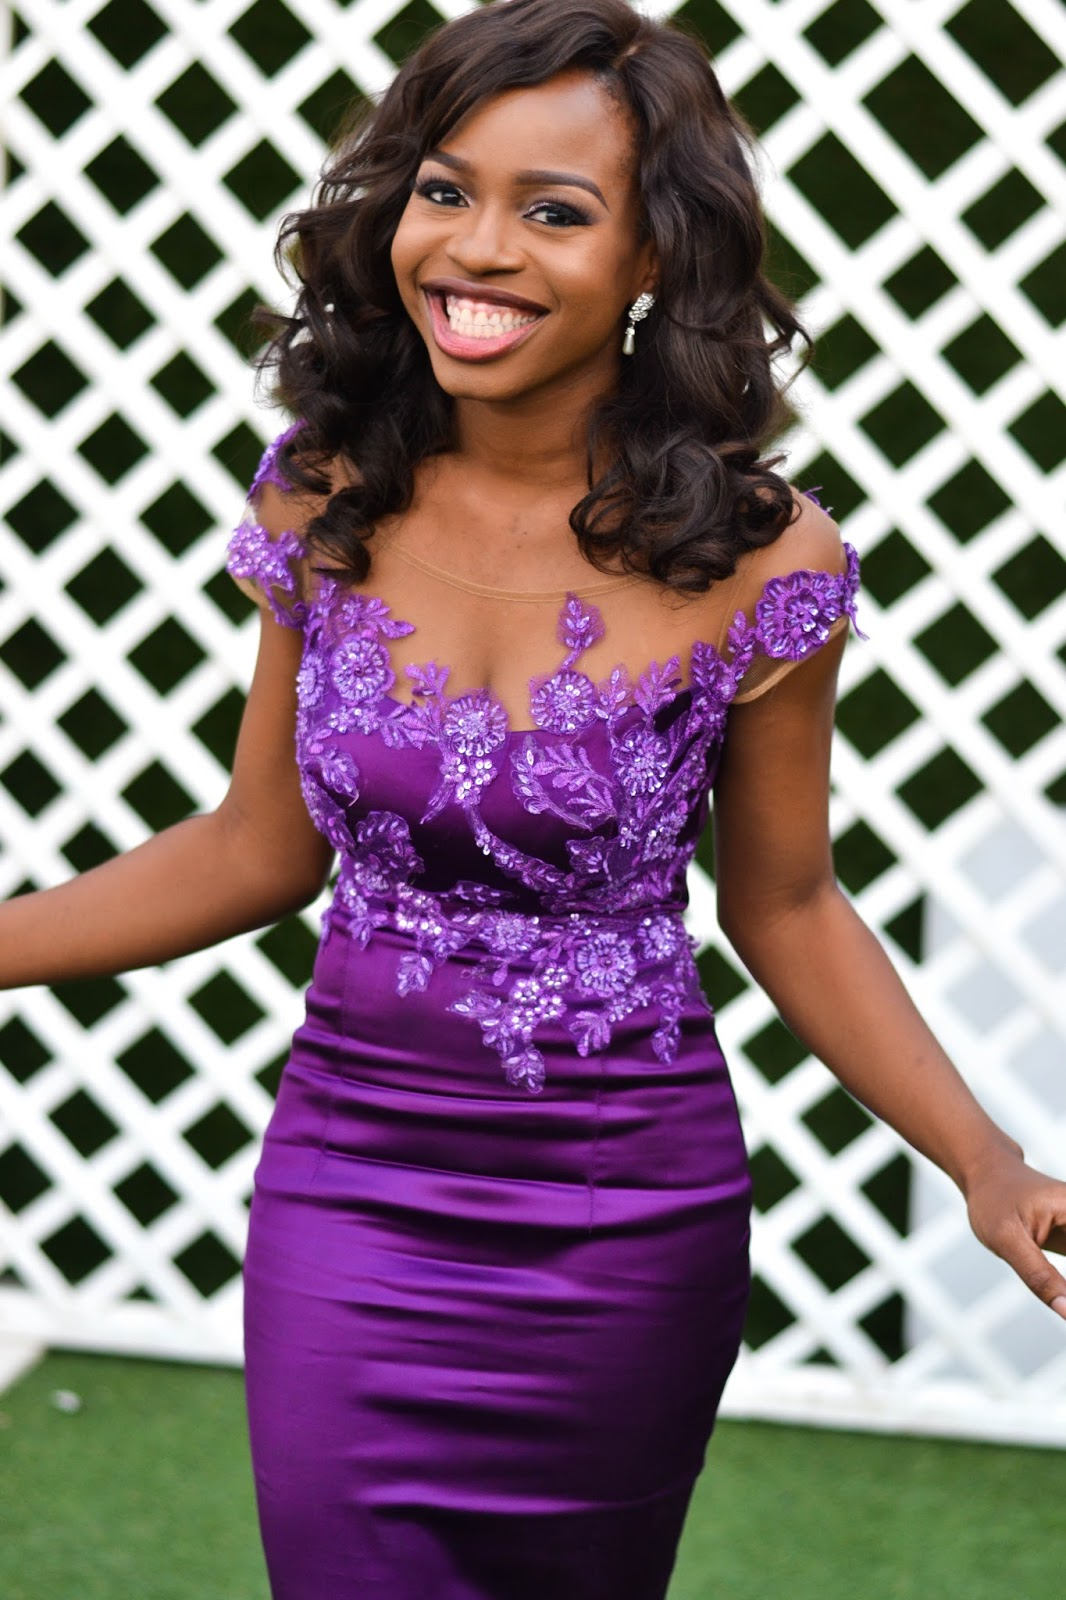 Lace Applique on Purple Evening Dress